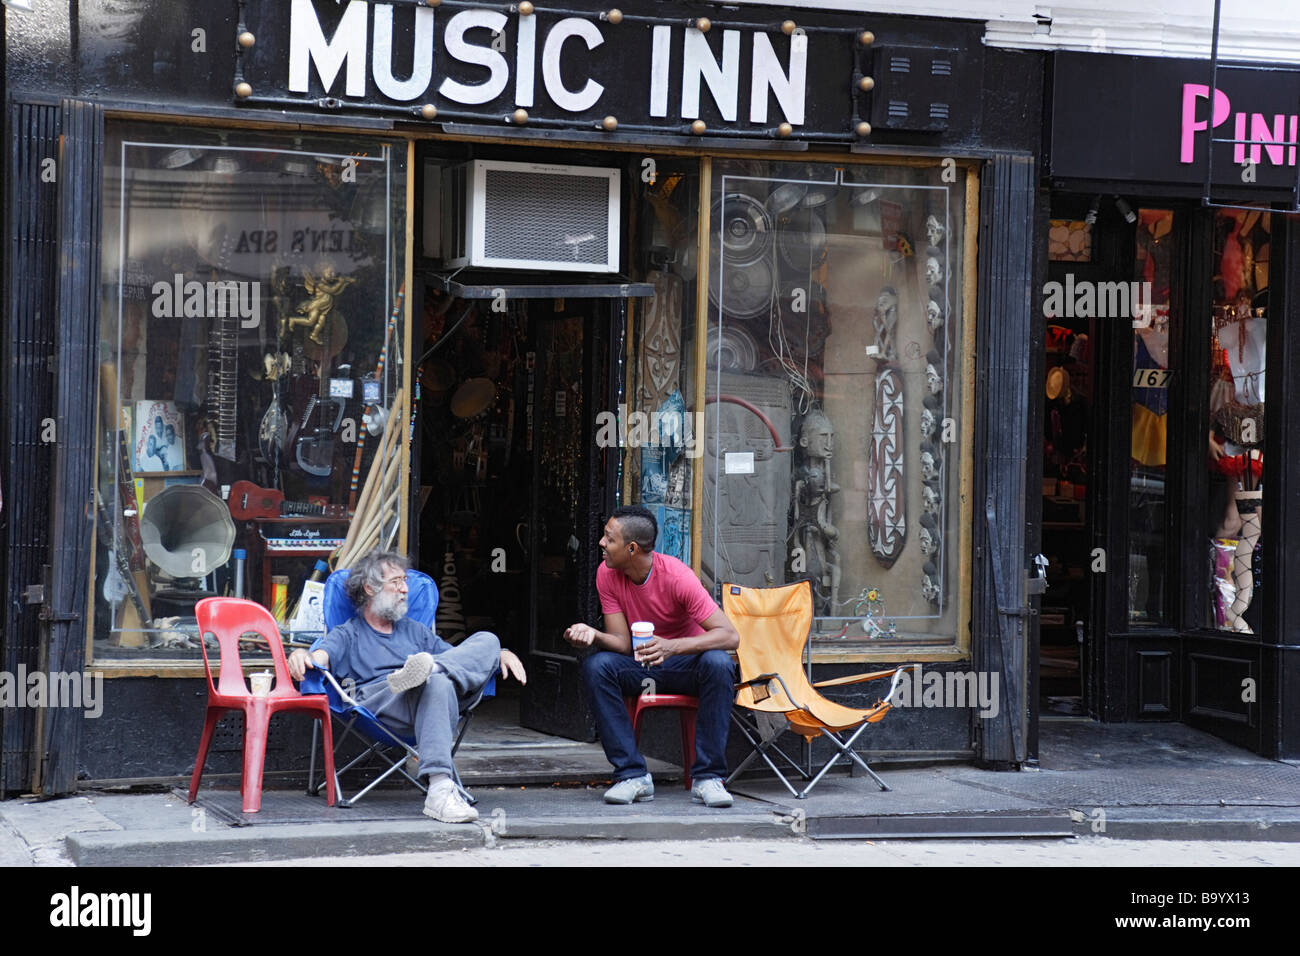 two men sitting in front of a music store greenwich village manhattan stock photo royalty free. Black Bedroom Furniture Sets. Home Design Ideas